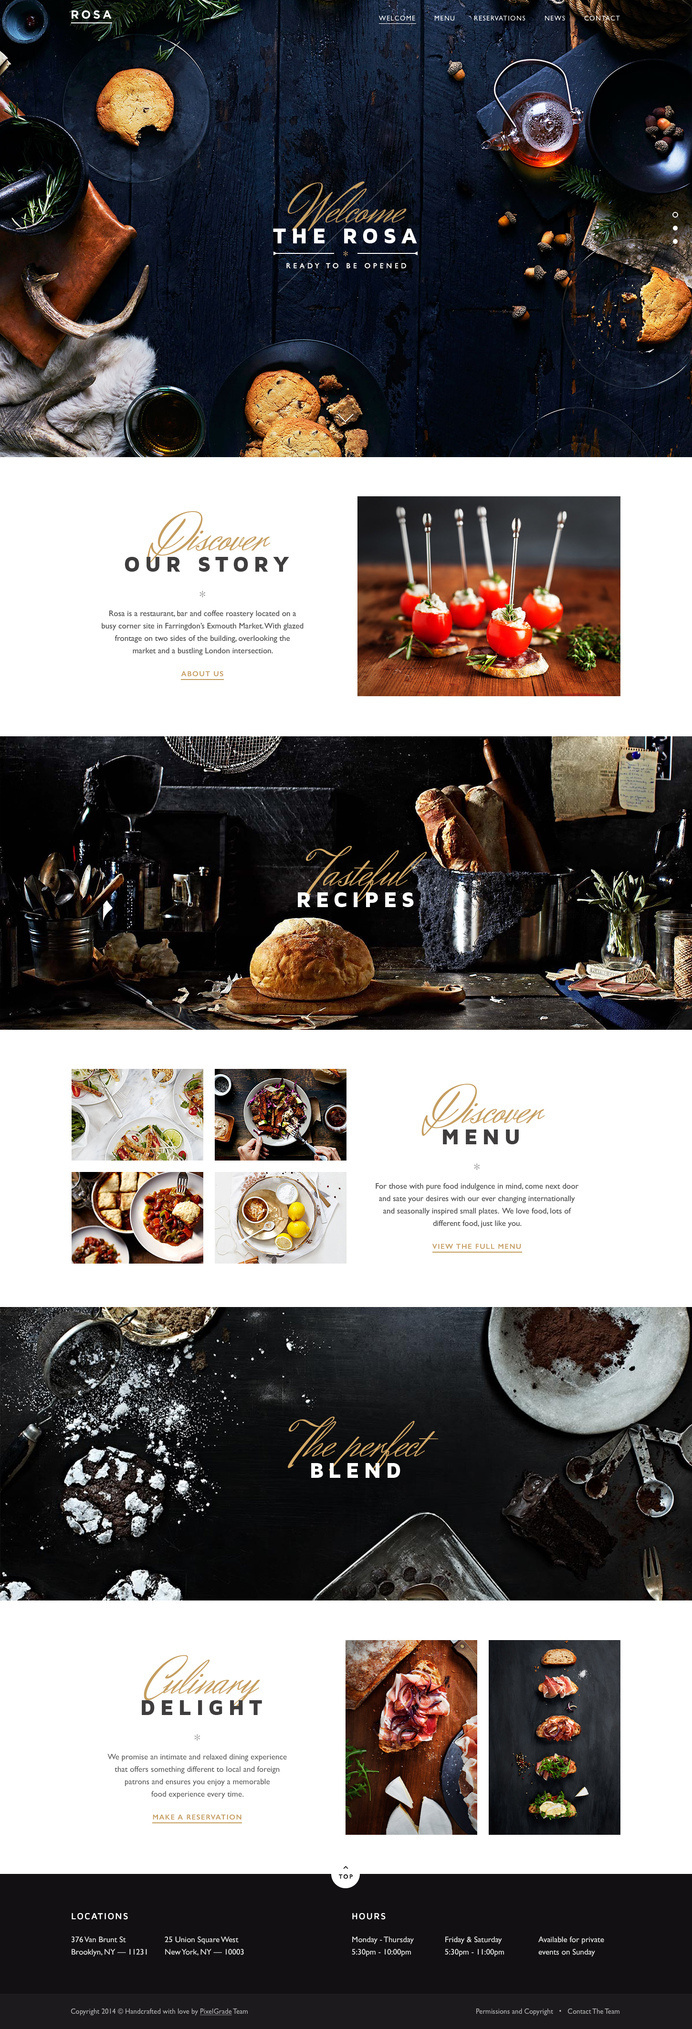 Rosa-real_size #design #web